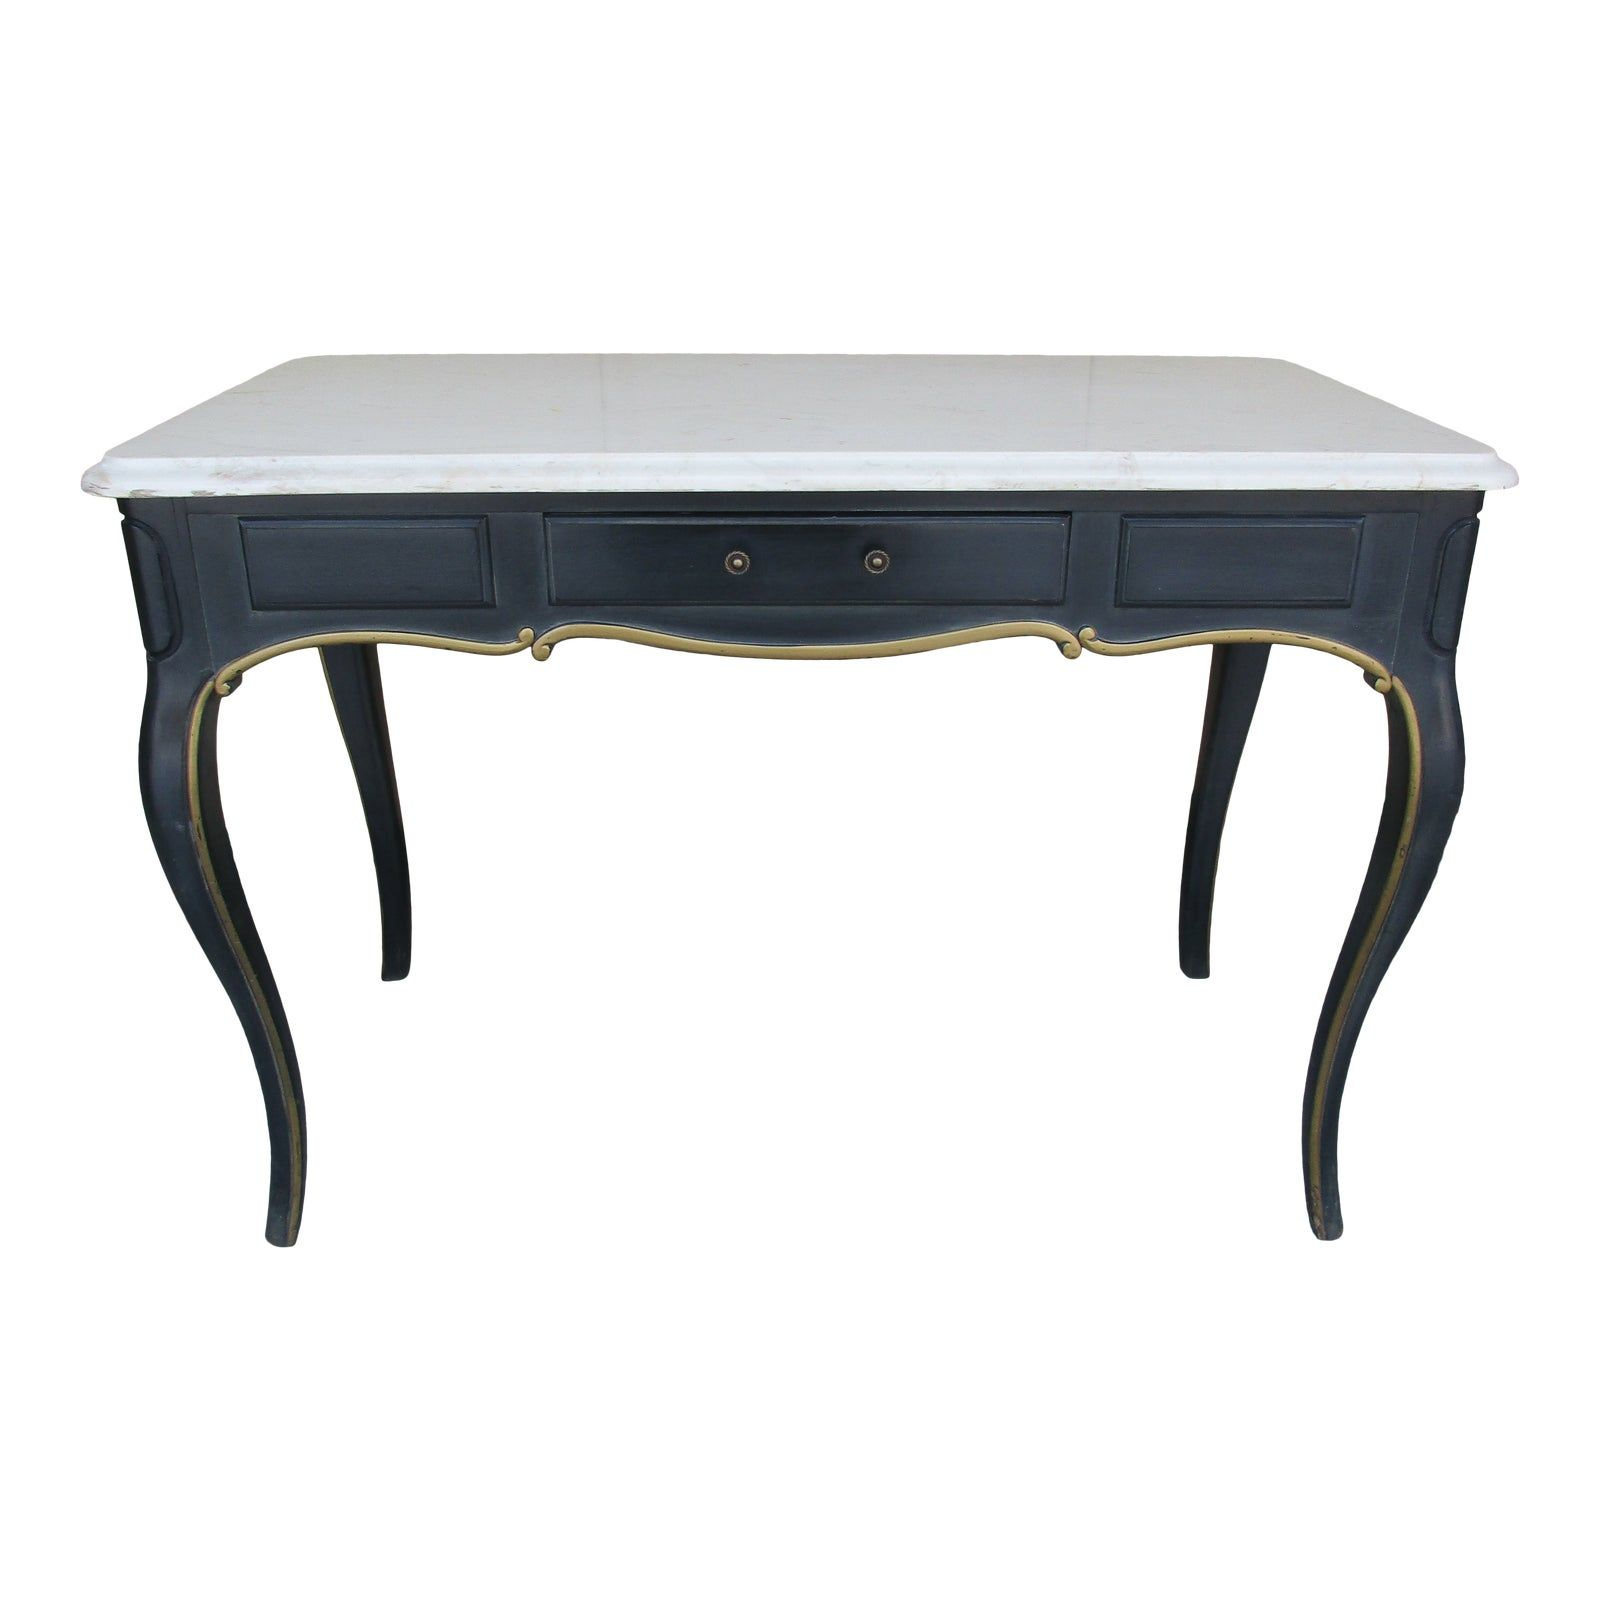 French Writing Desk With Marble Top Biltmore Hotel Chairish French Writing Desk French Style Writing Desk Writing Desk